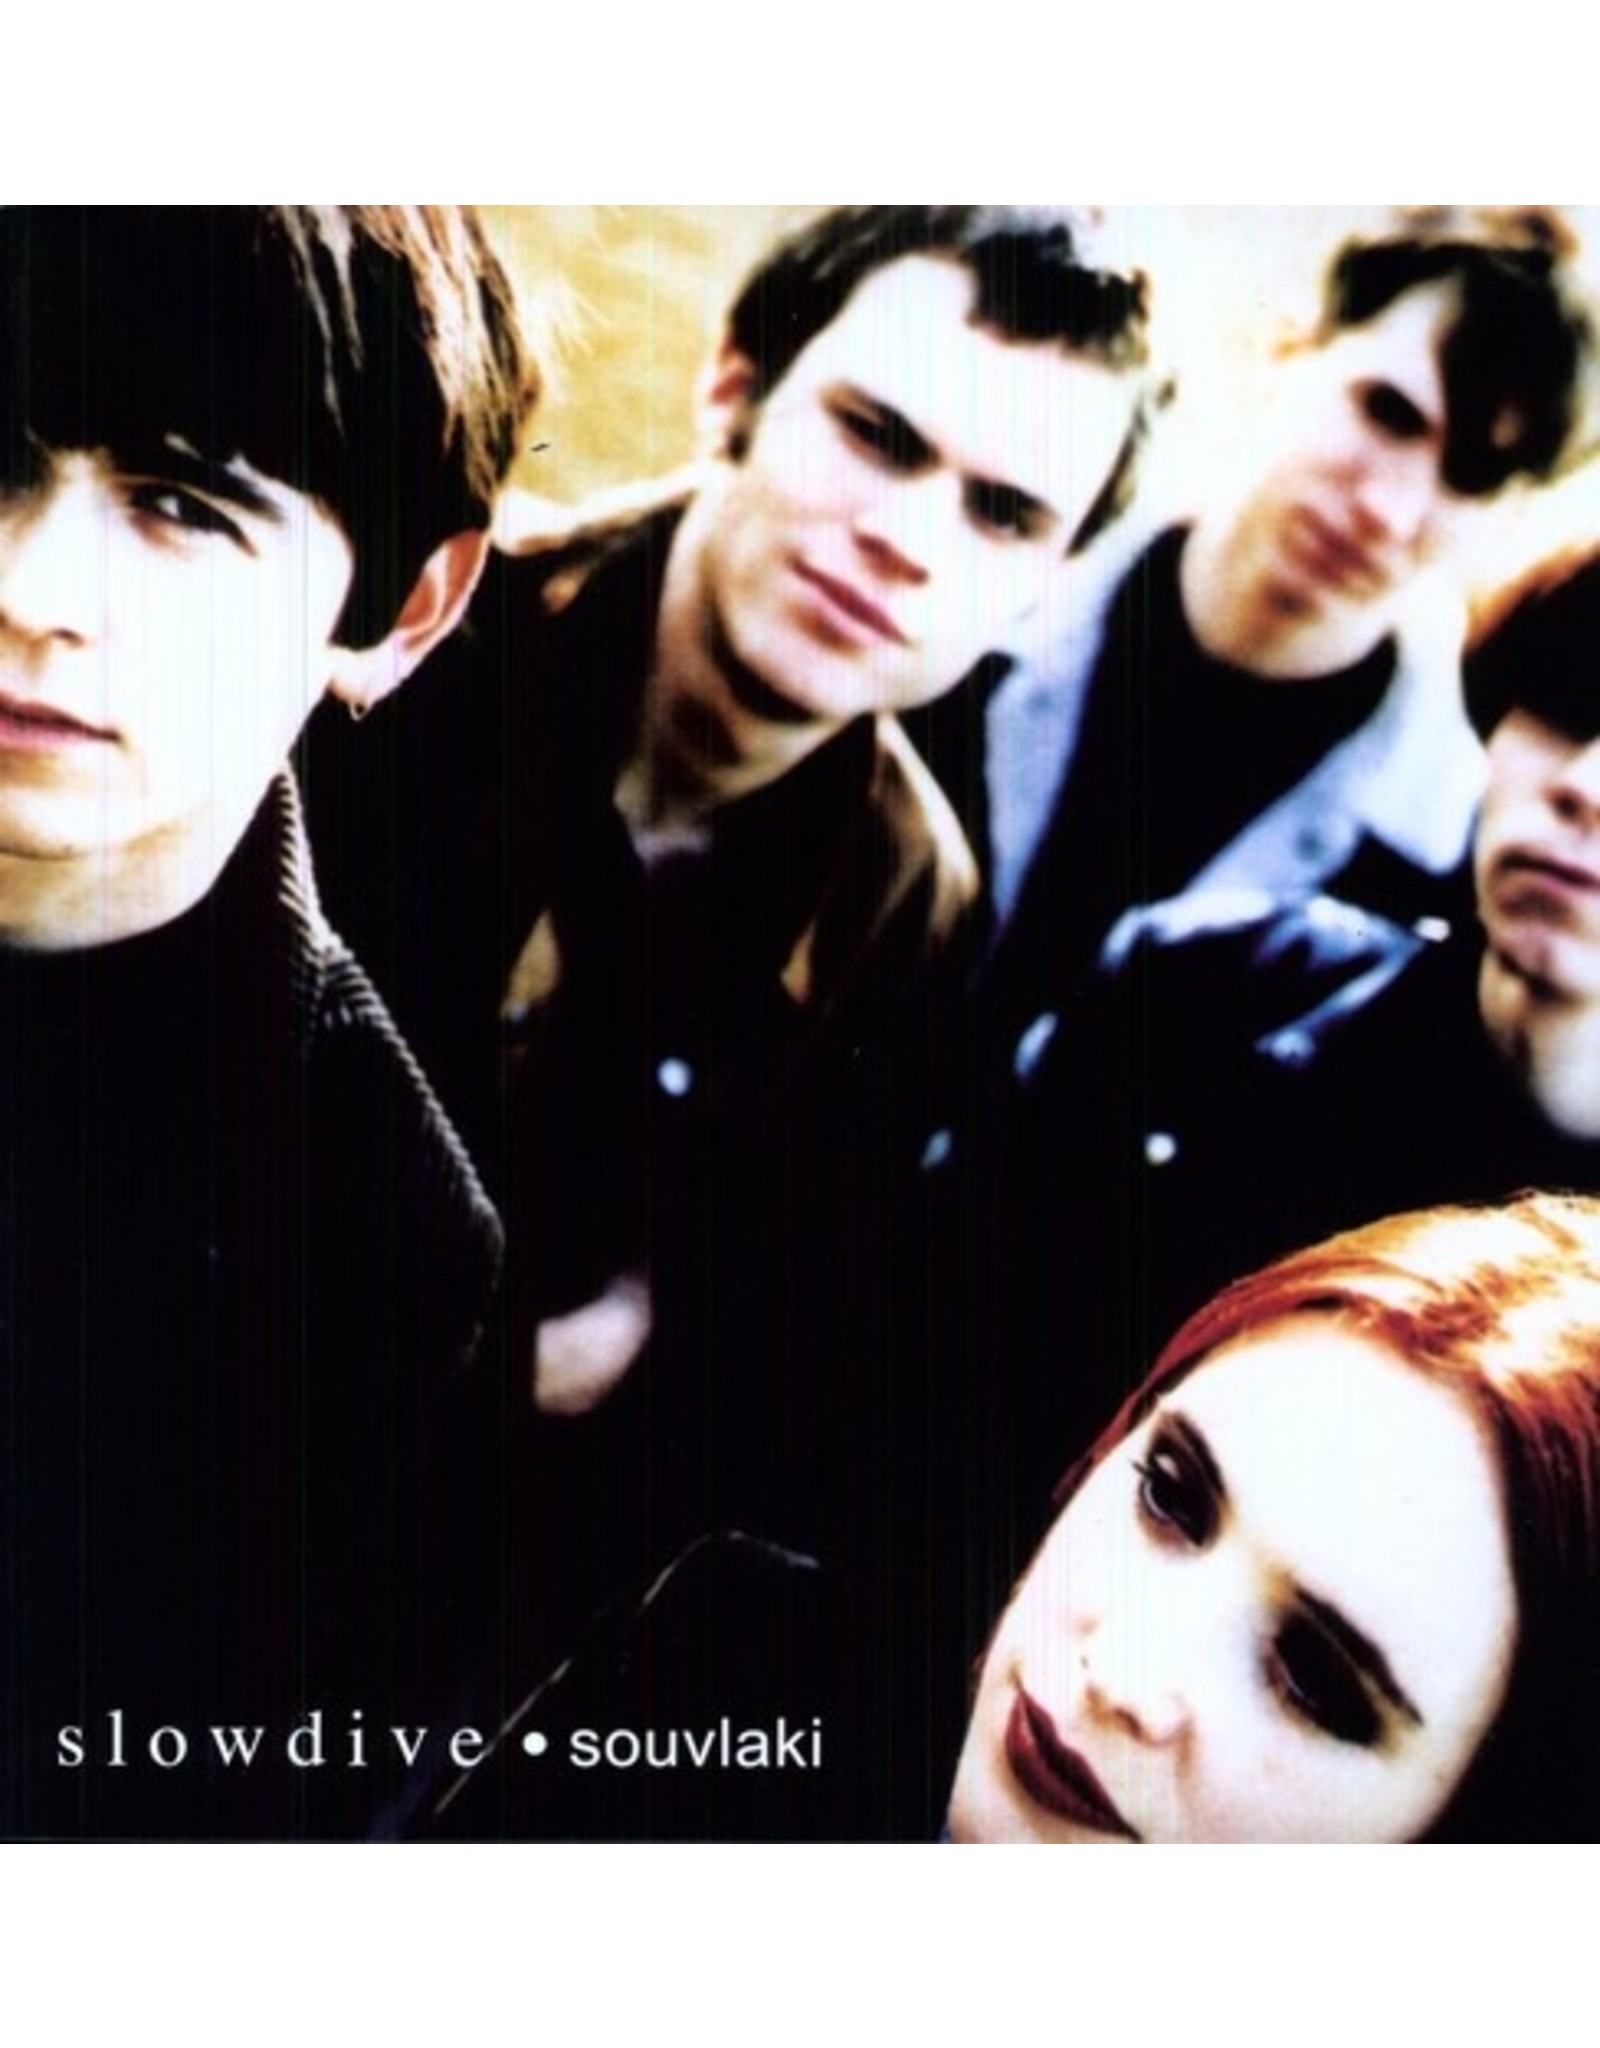 New Vinyl Slowdive - Souvlaki LP